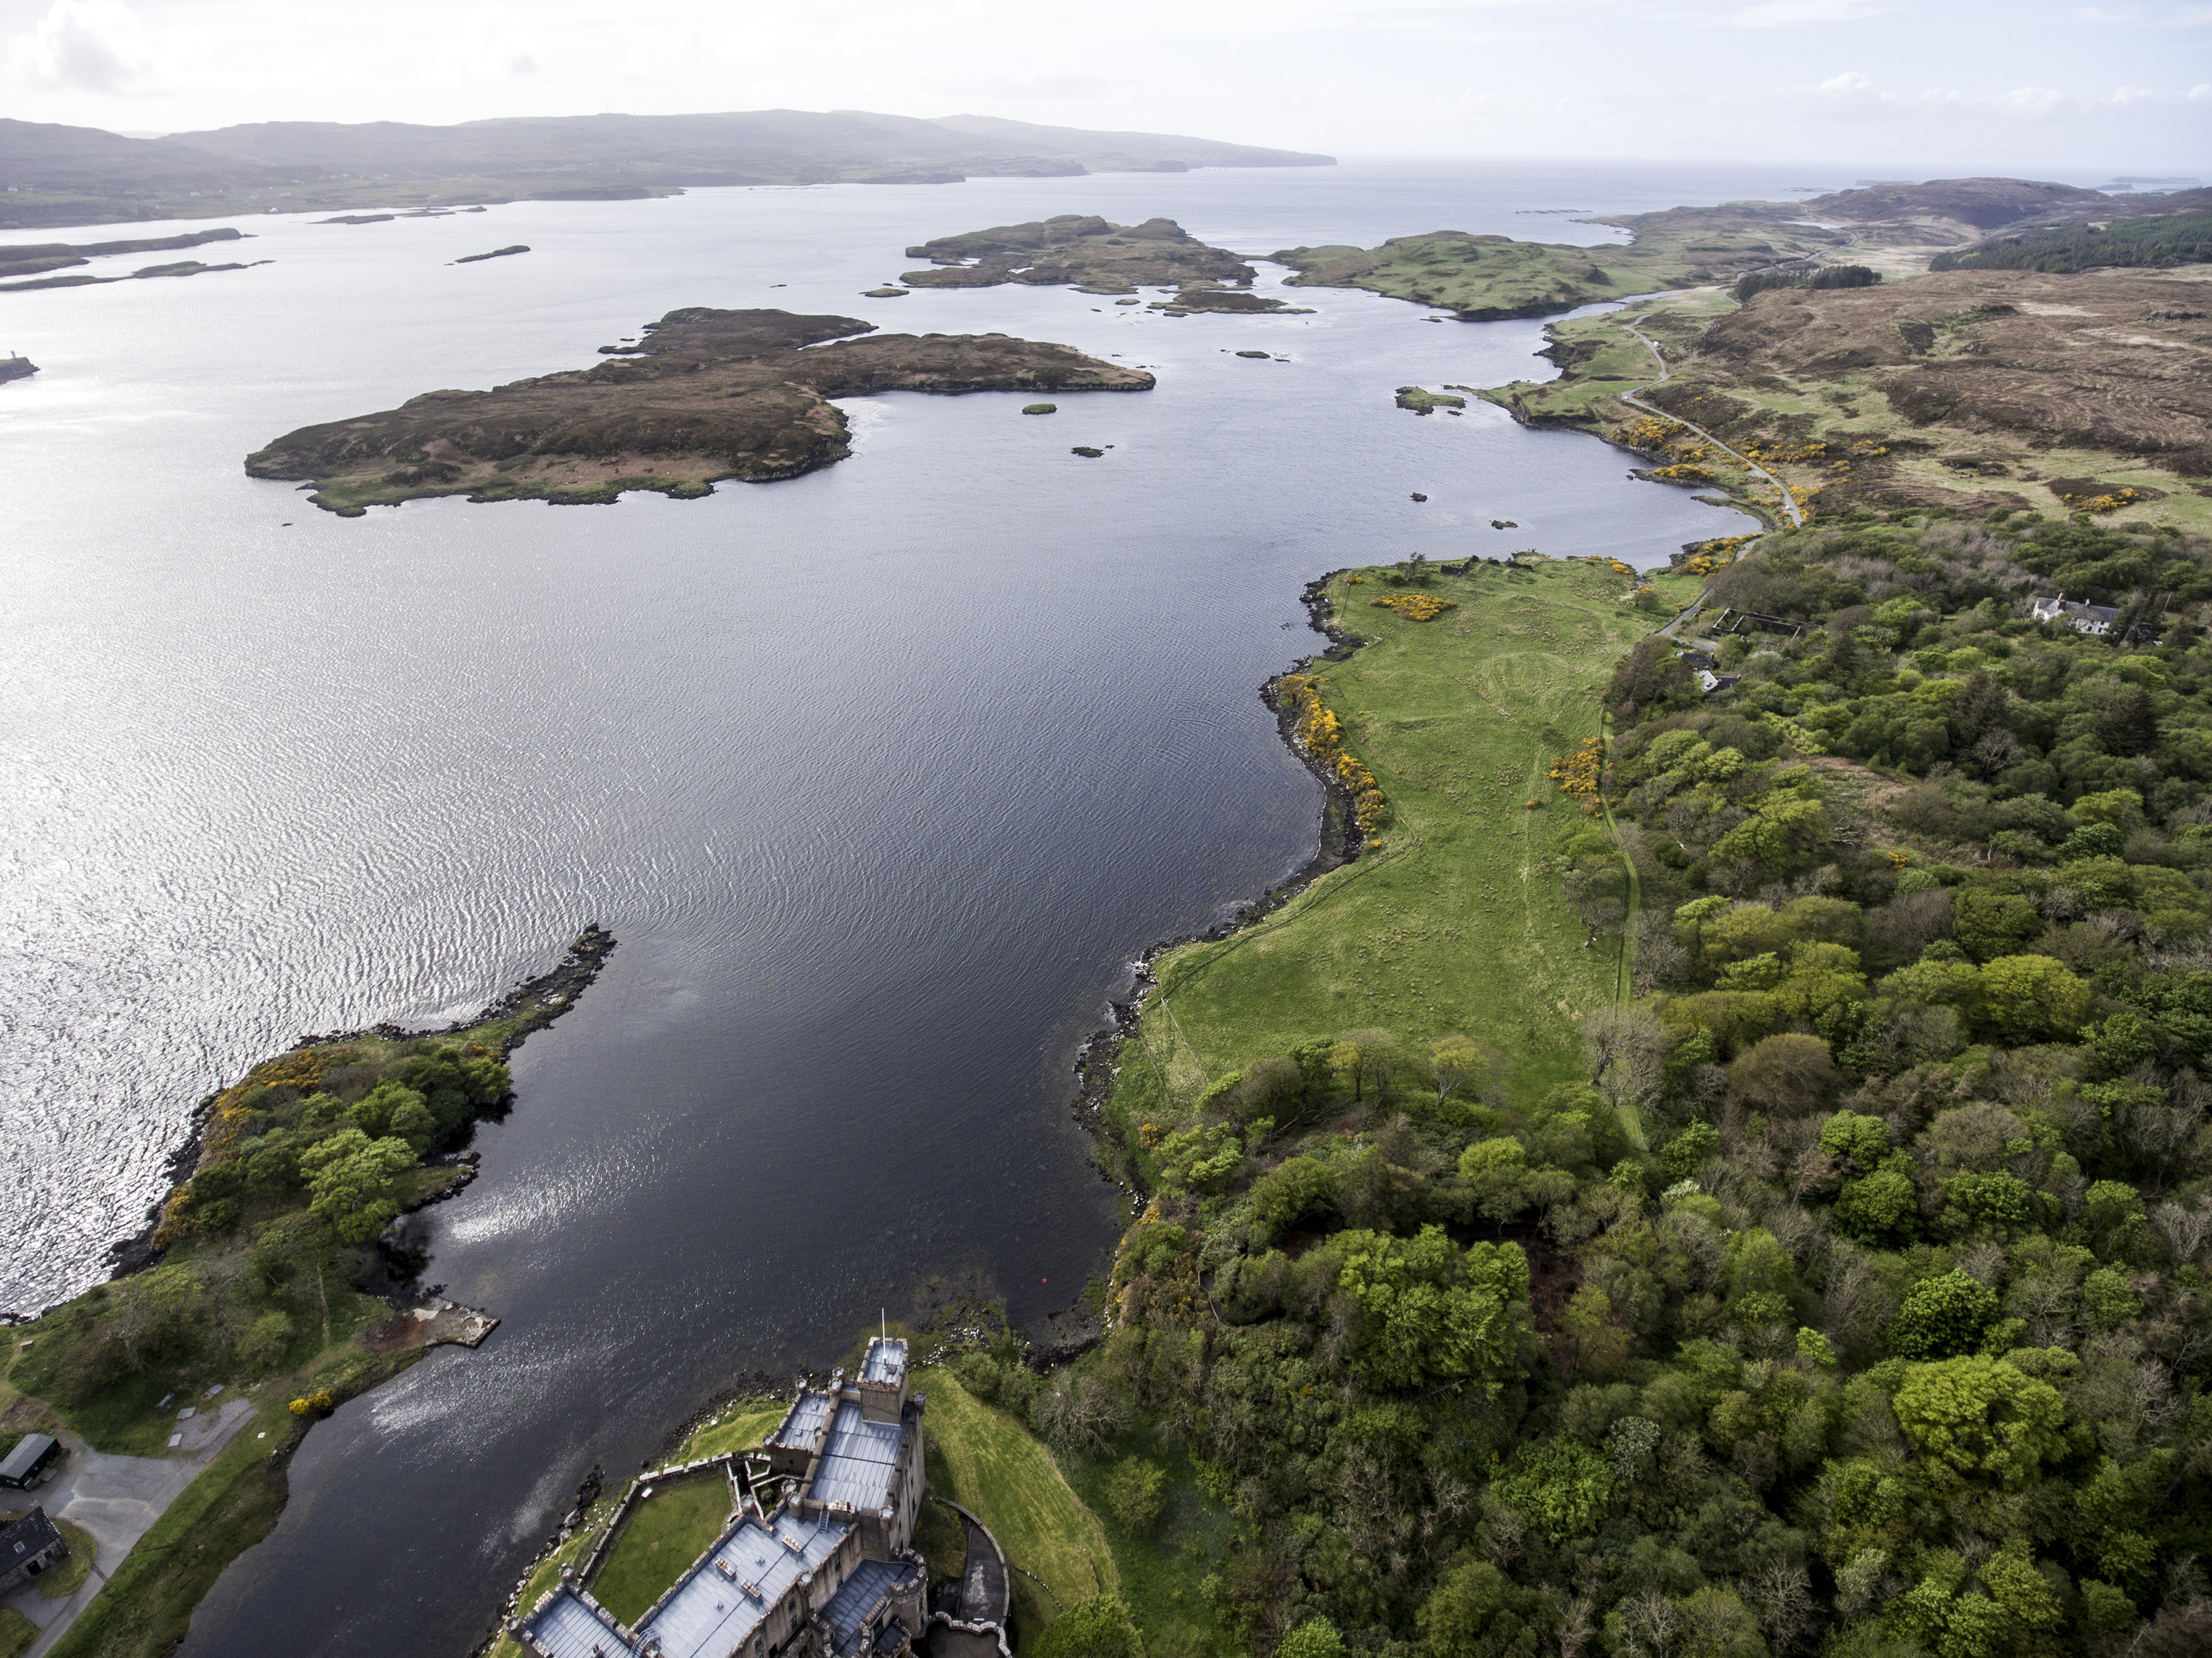 Aearial shot Landscape At Loch Dunvegan, Colbost, Isle of Skye, Scotland, Great Britain 2